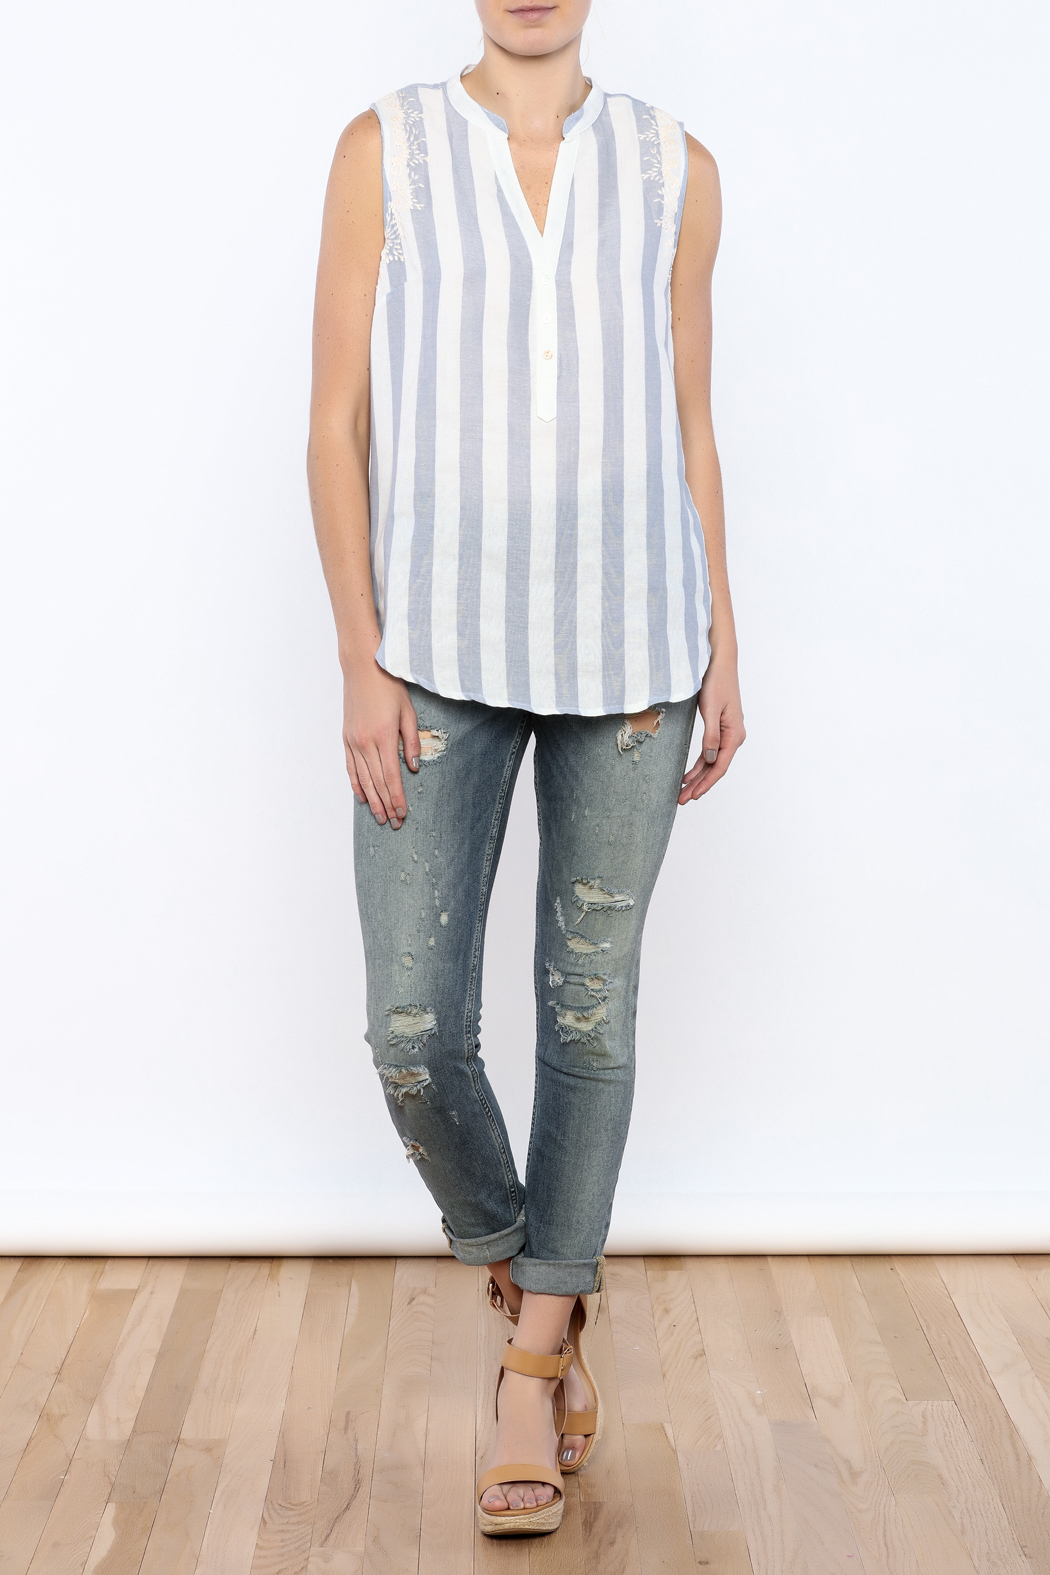 Bacio Stripe Sleeveless Top - Front Full Image